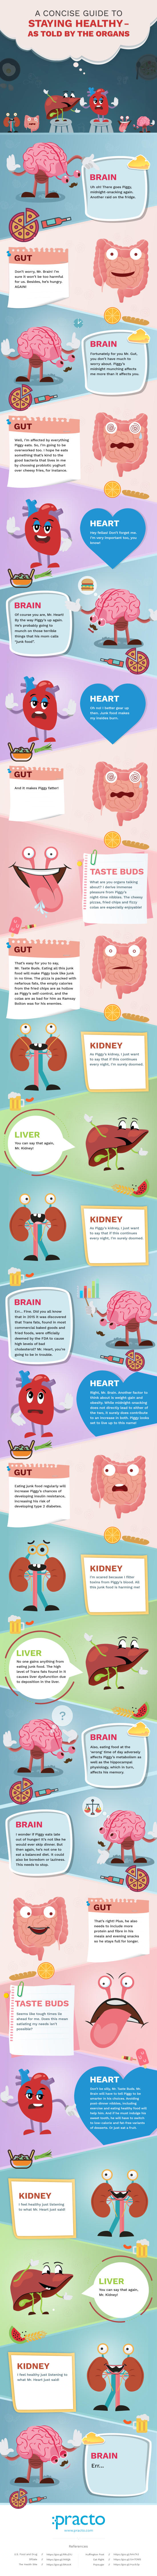 What the Body Organs Have to Say About Staying Healthy - Infographic